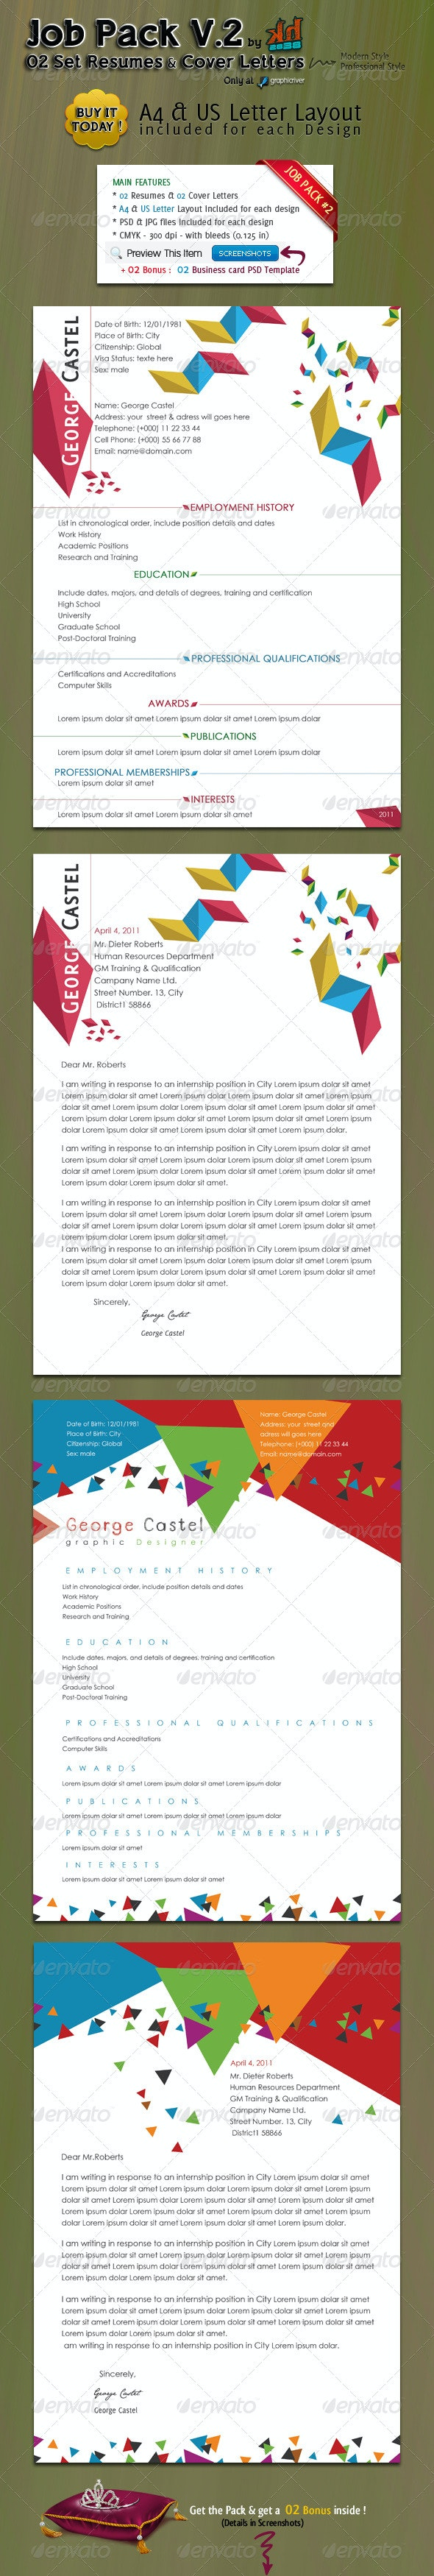 JOB PACK V.2: 2 Resumes with their Cover Letters - Resumes Stationery